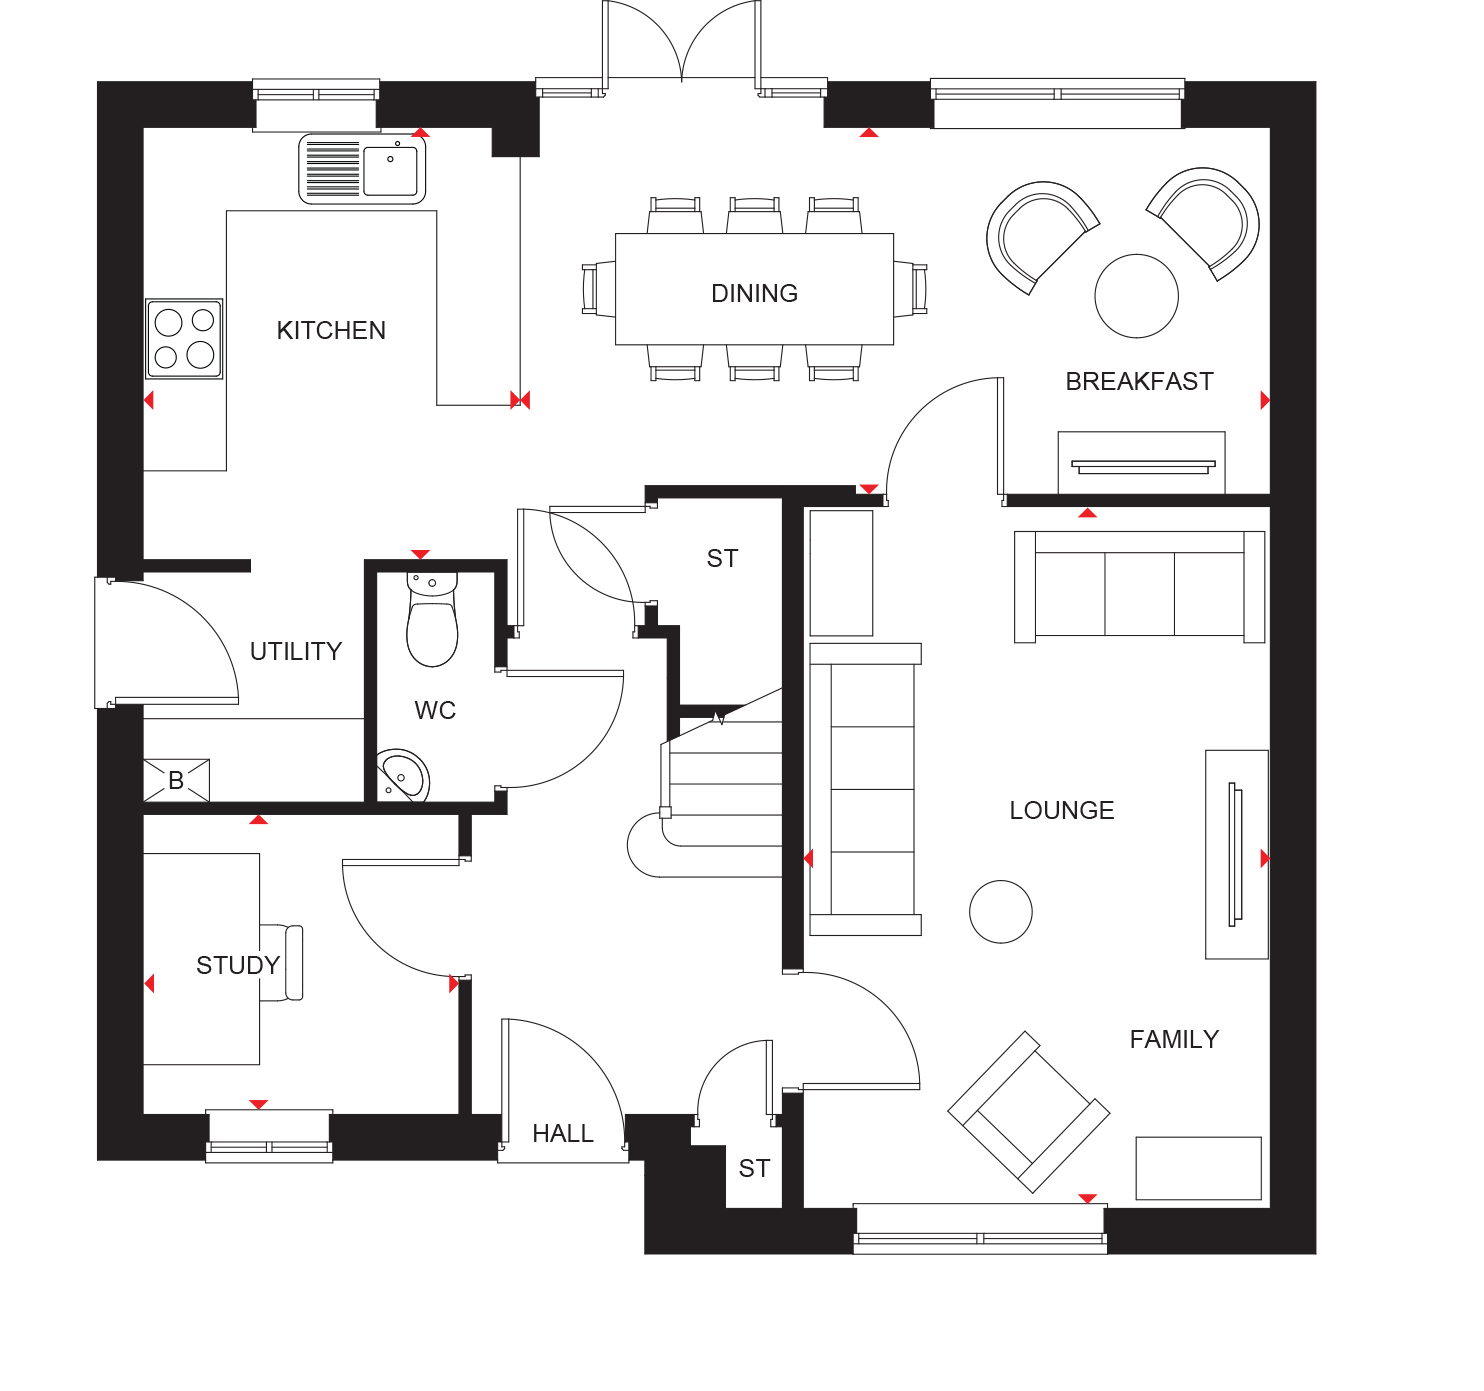 Radleigh At Green Lane Yarm Ts15 4 Bedroom Detached House For Sale 52357438 Primelocation